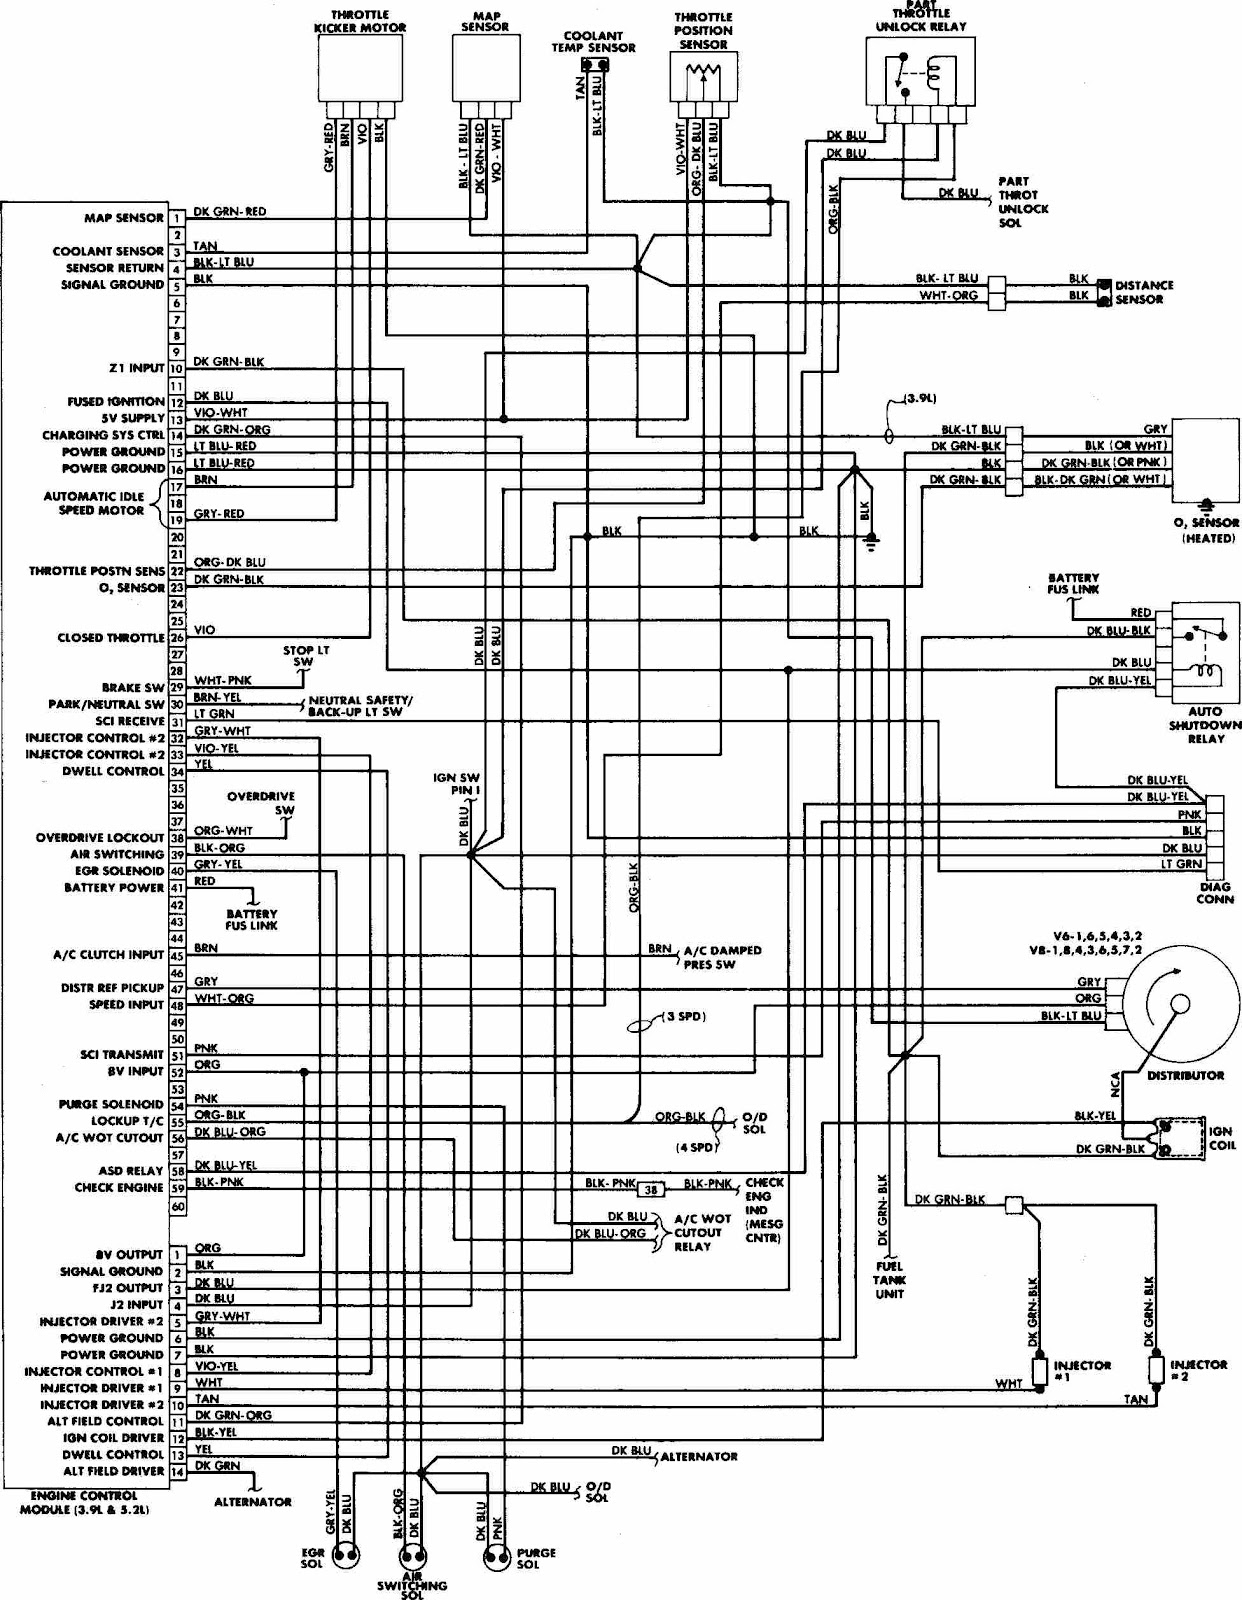 dodge w100 1988 engine control wiring diagram all about wiring rh sellfie co 92 Jeep Wrangler Wiring Diagram 92 Ford Super Duty Wiring Diagram